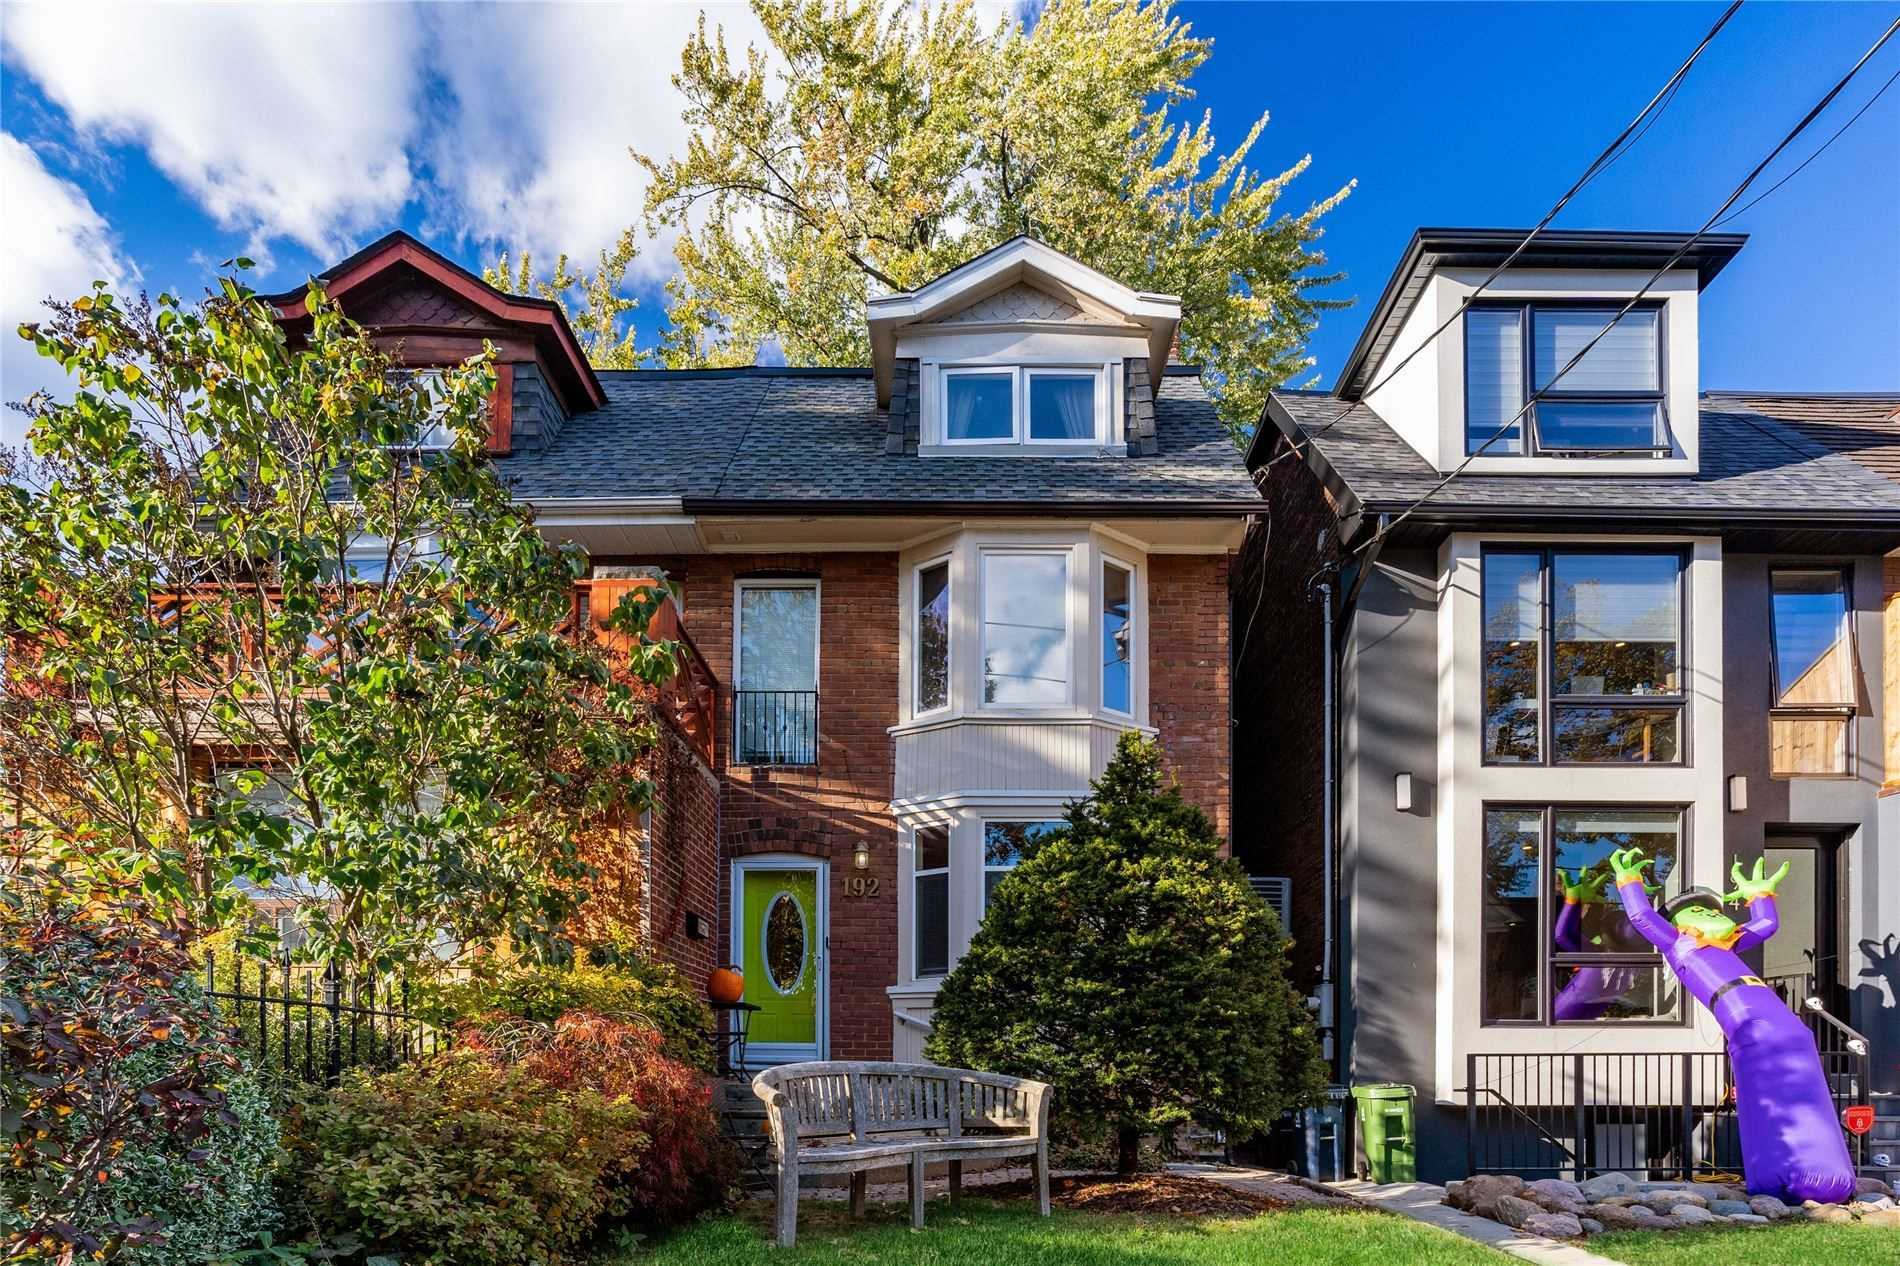 192 Browning Ave, Toronto, Ontario M4K1W8, 3 Bedrooms Bedrooms, 10 Rooms Rooms,3 BathroomsBathrooms,Semi-detached,For Sale,Browning,E4958992